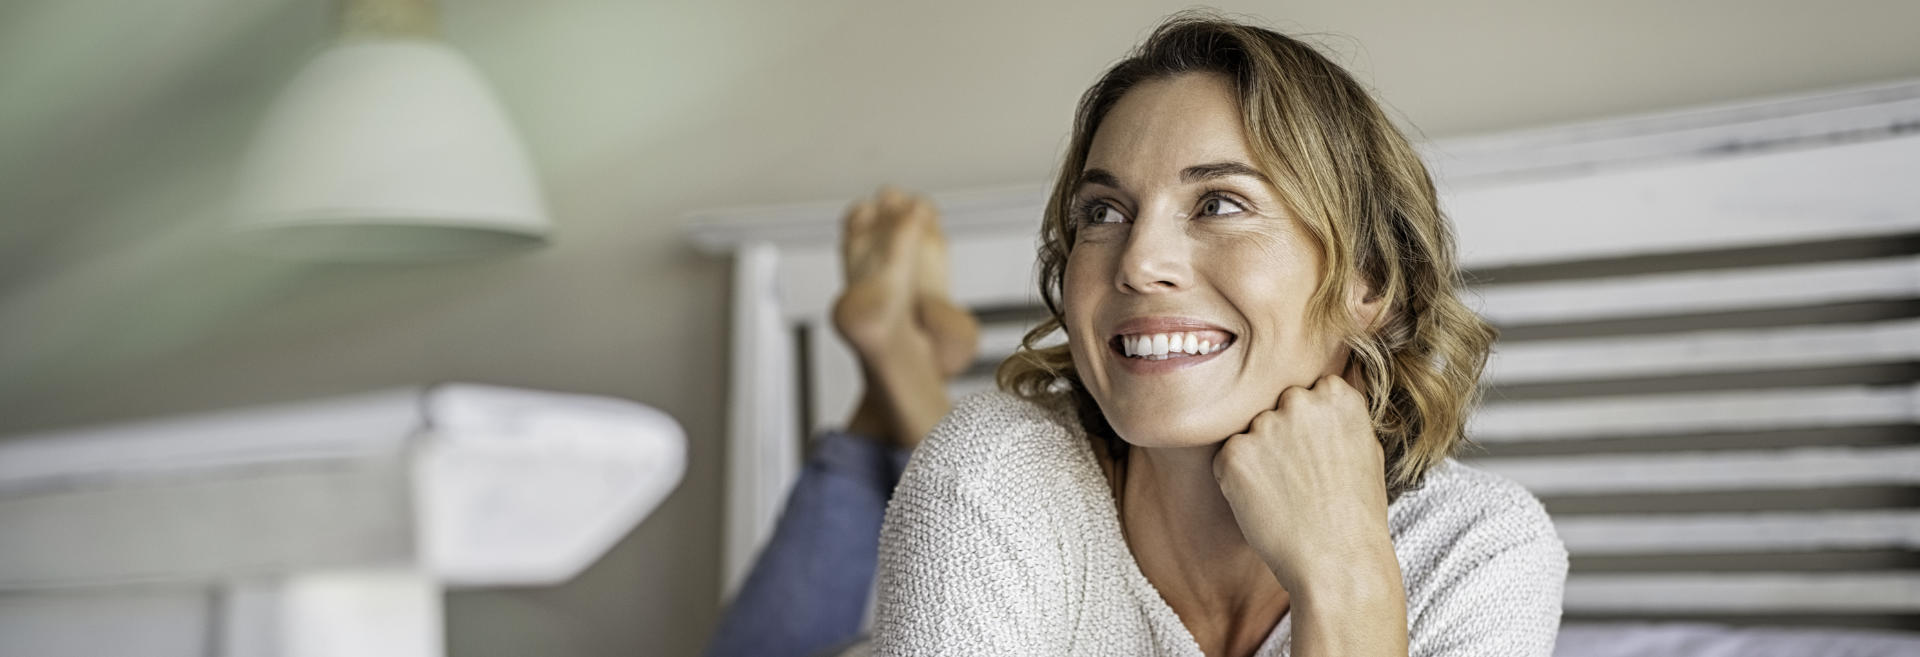 Relaxed middle-aged woman showing beautiful yeeth in her smile.